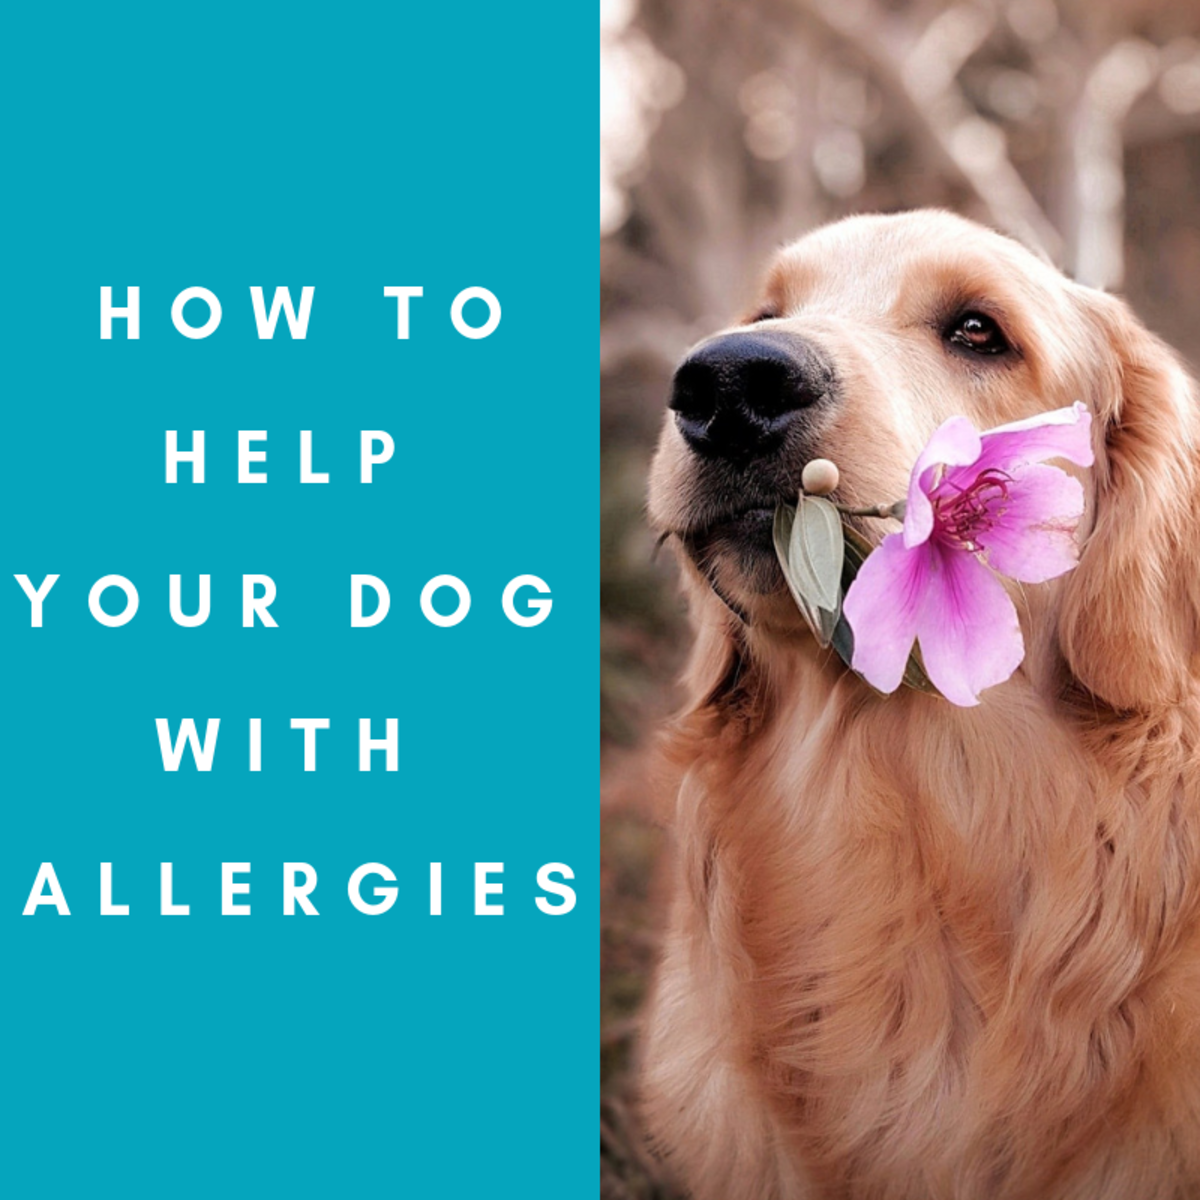 Ways to help alleviate allergic symptoms in dogs.